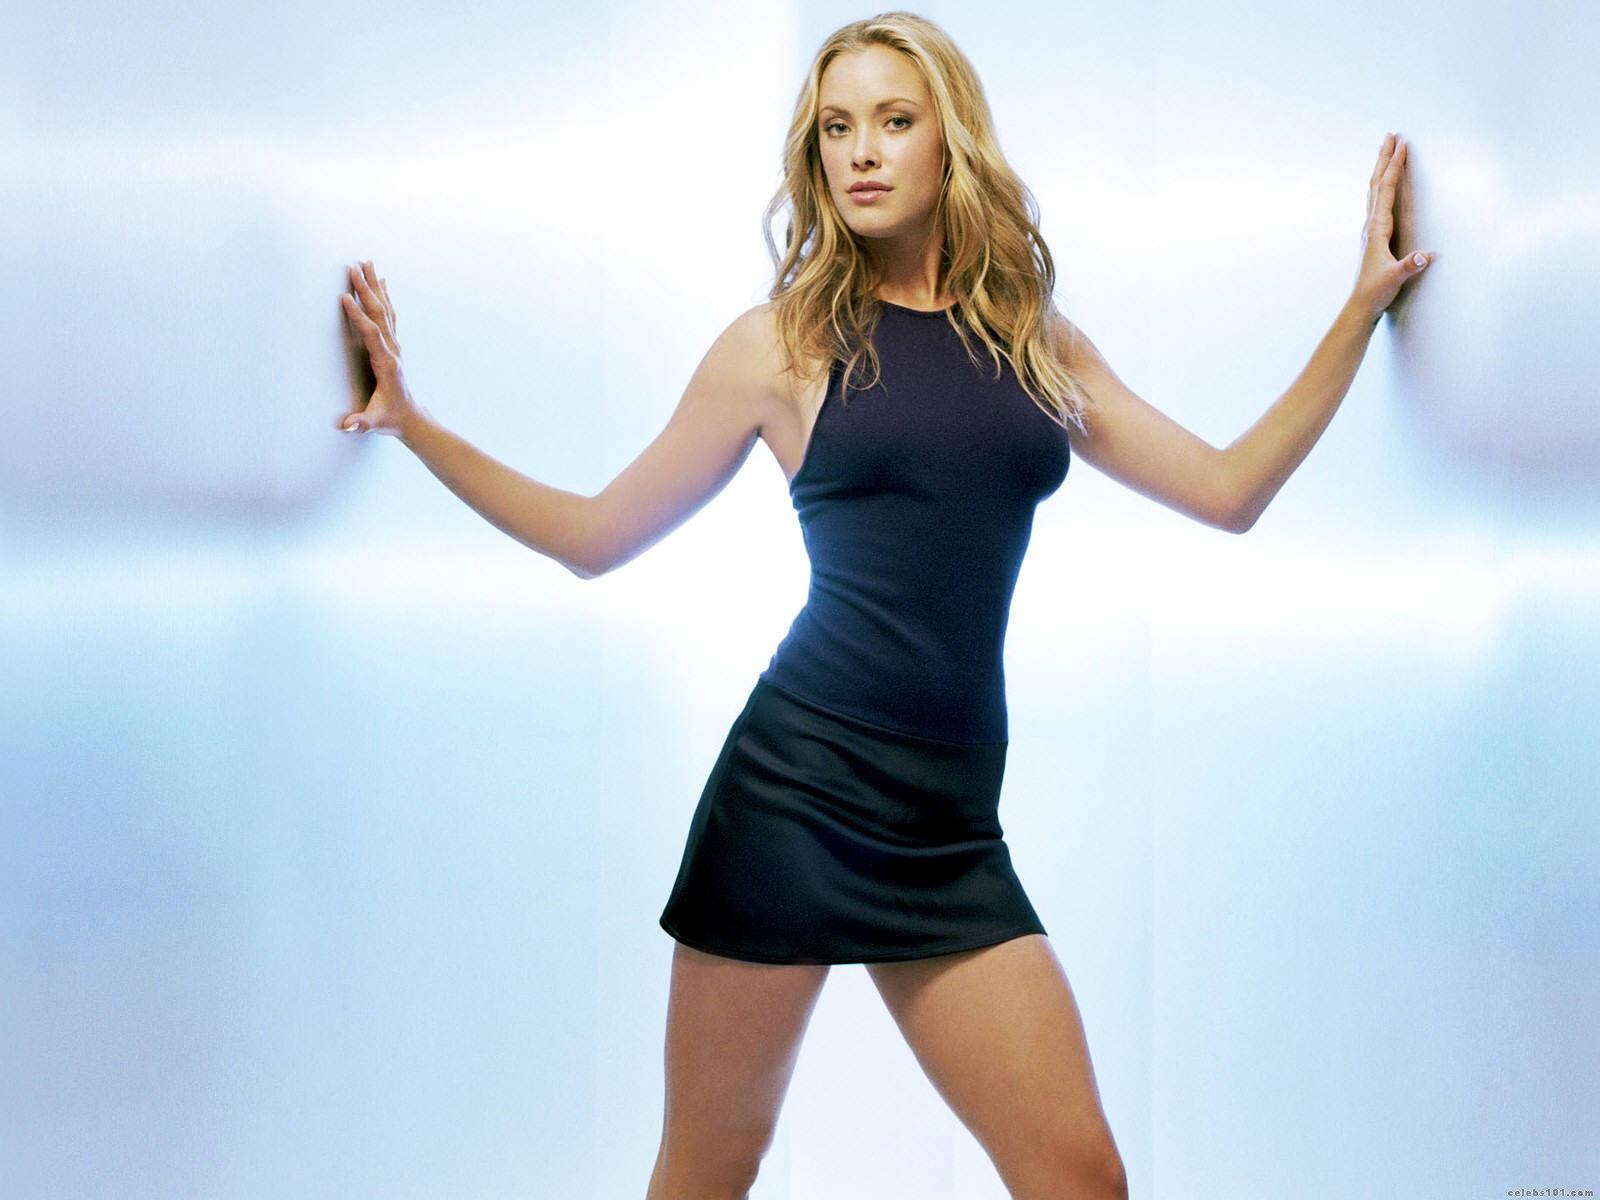 Kristanna Loken Wallpapers moreover Watch furthermore Watch in addition Ktm Duke 790 Eicma 2017 2018 10957 additionally 191678604800. on bmw s1000rr black